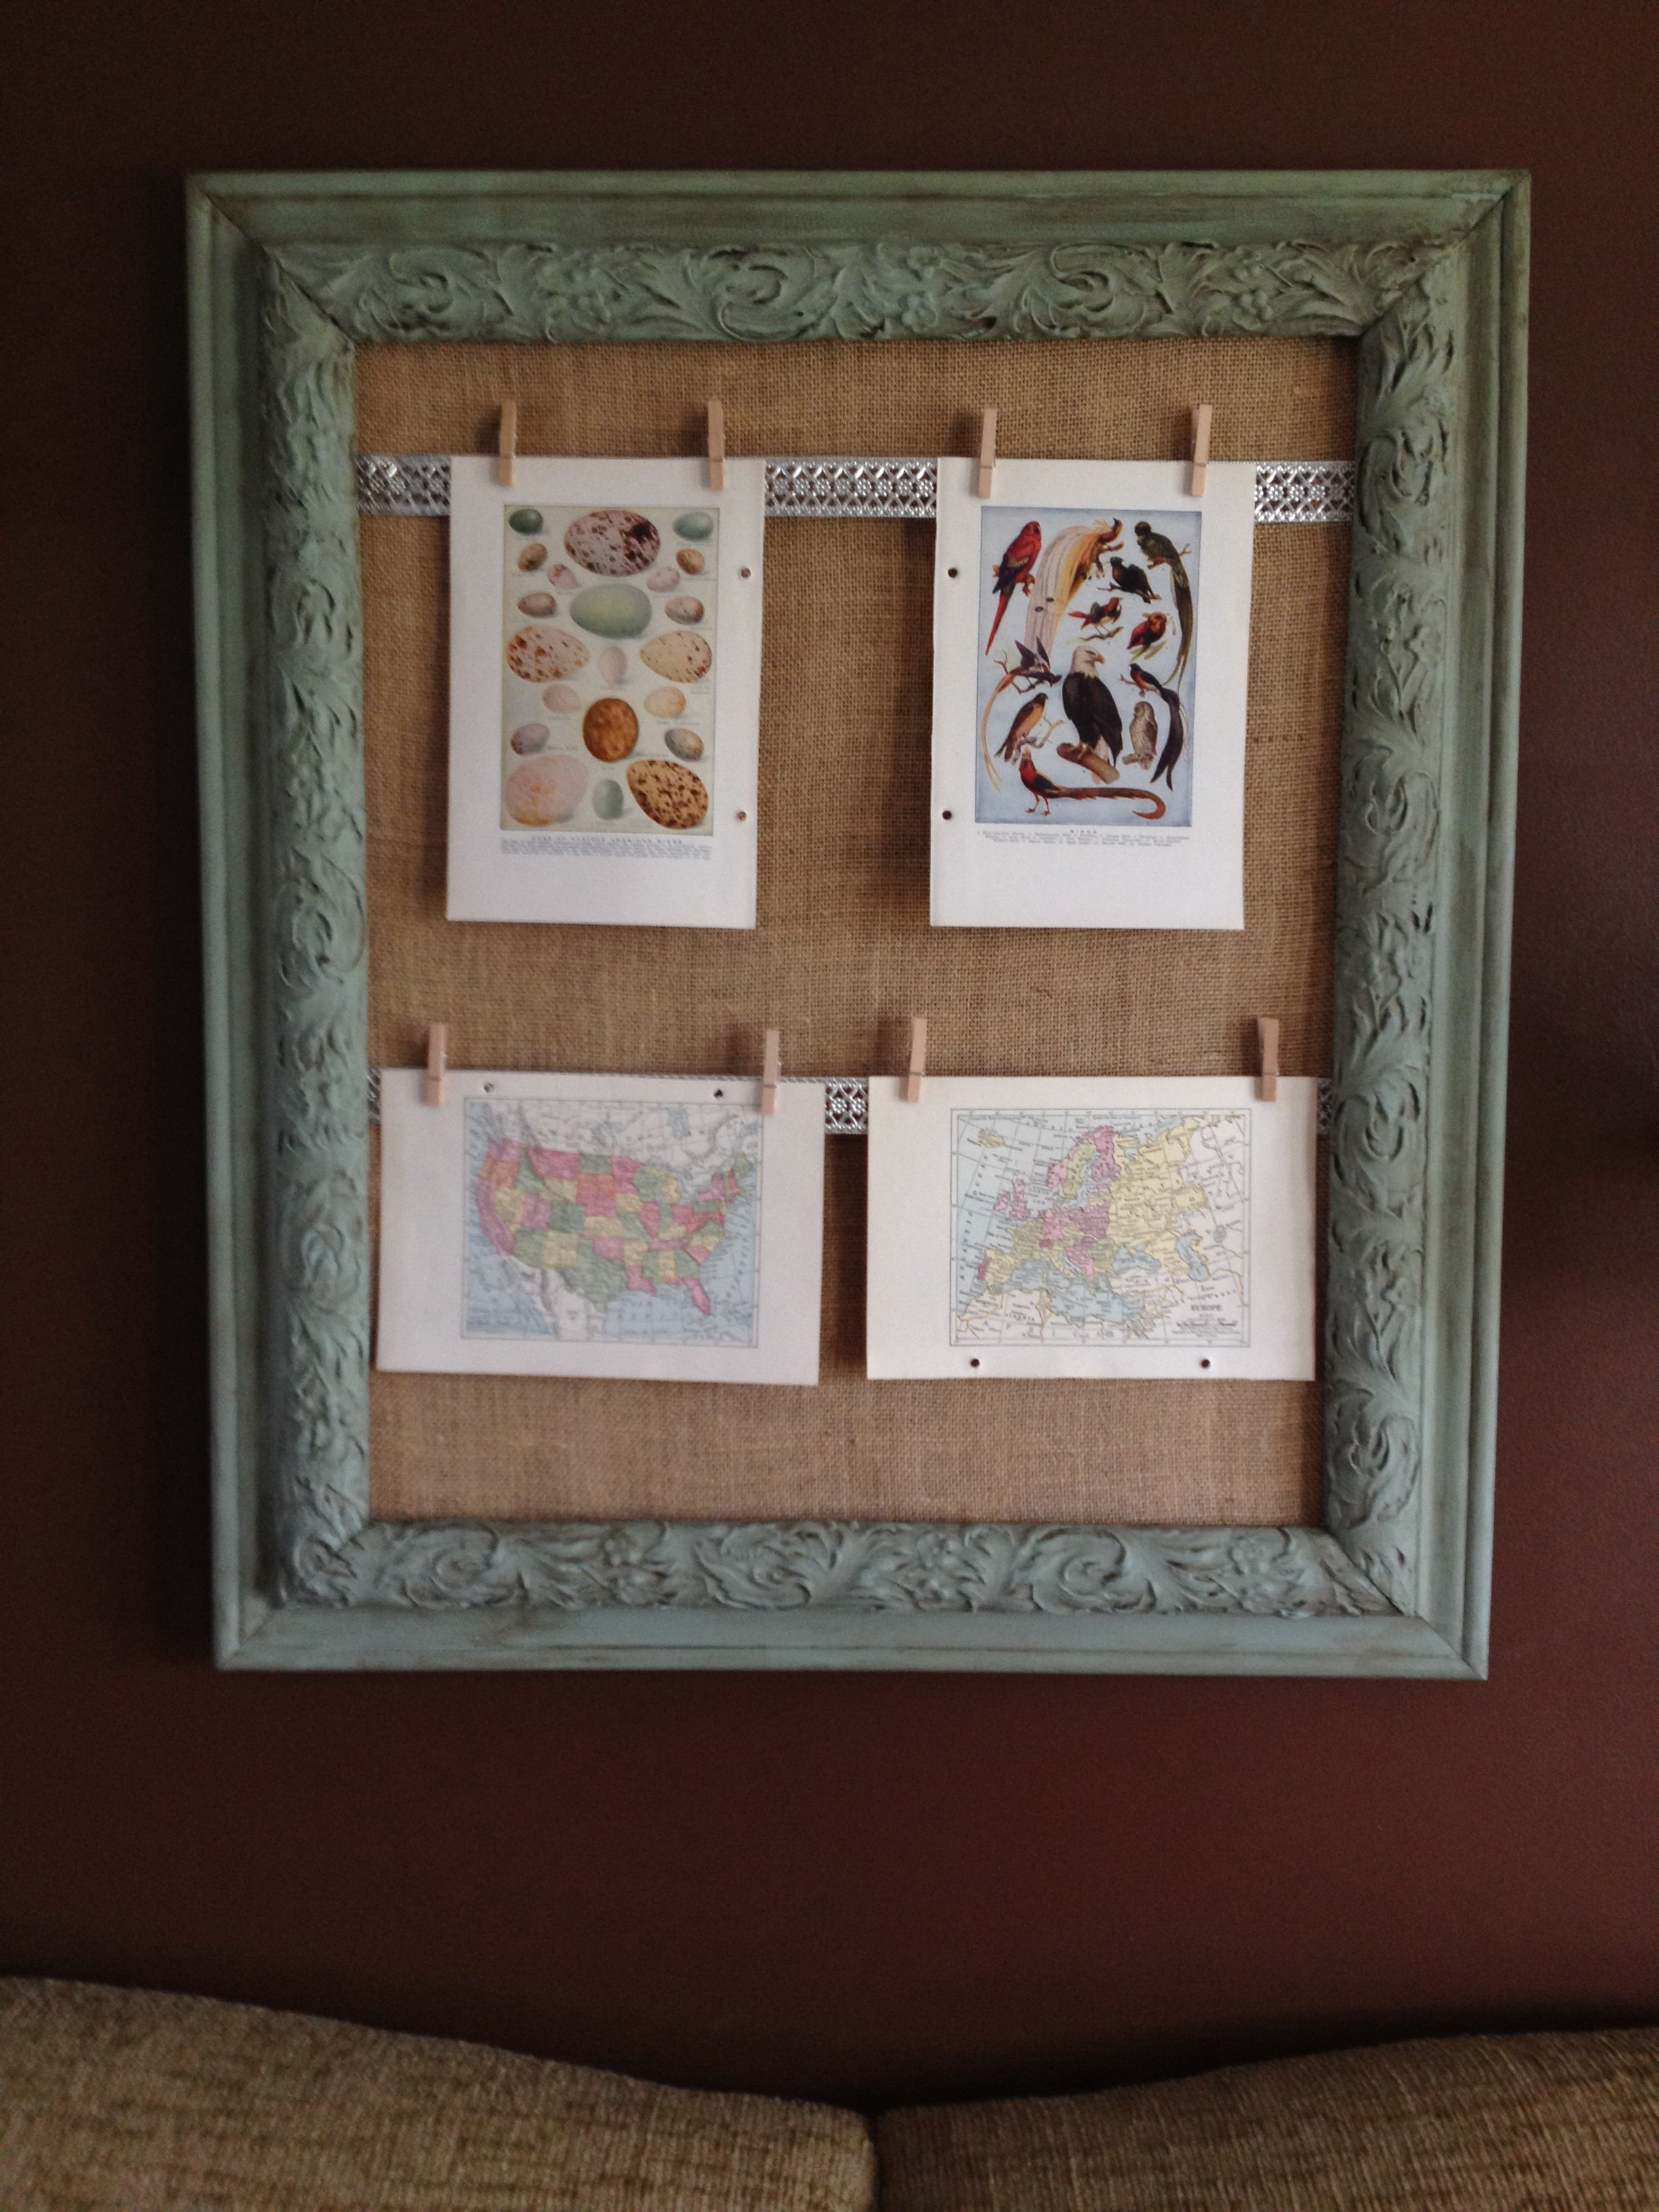 DIY Upcycled picture frame with burlap and prints from vintage encyclopedia